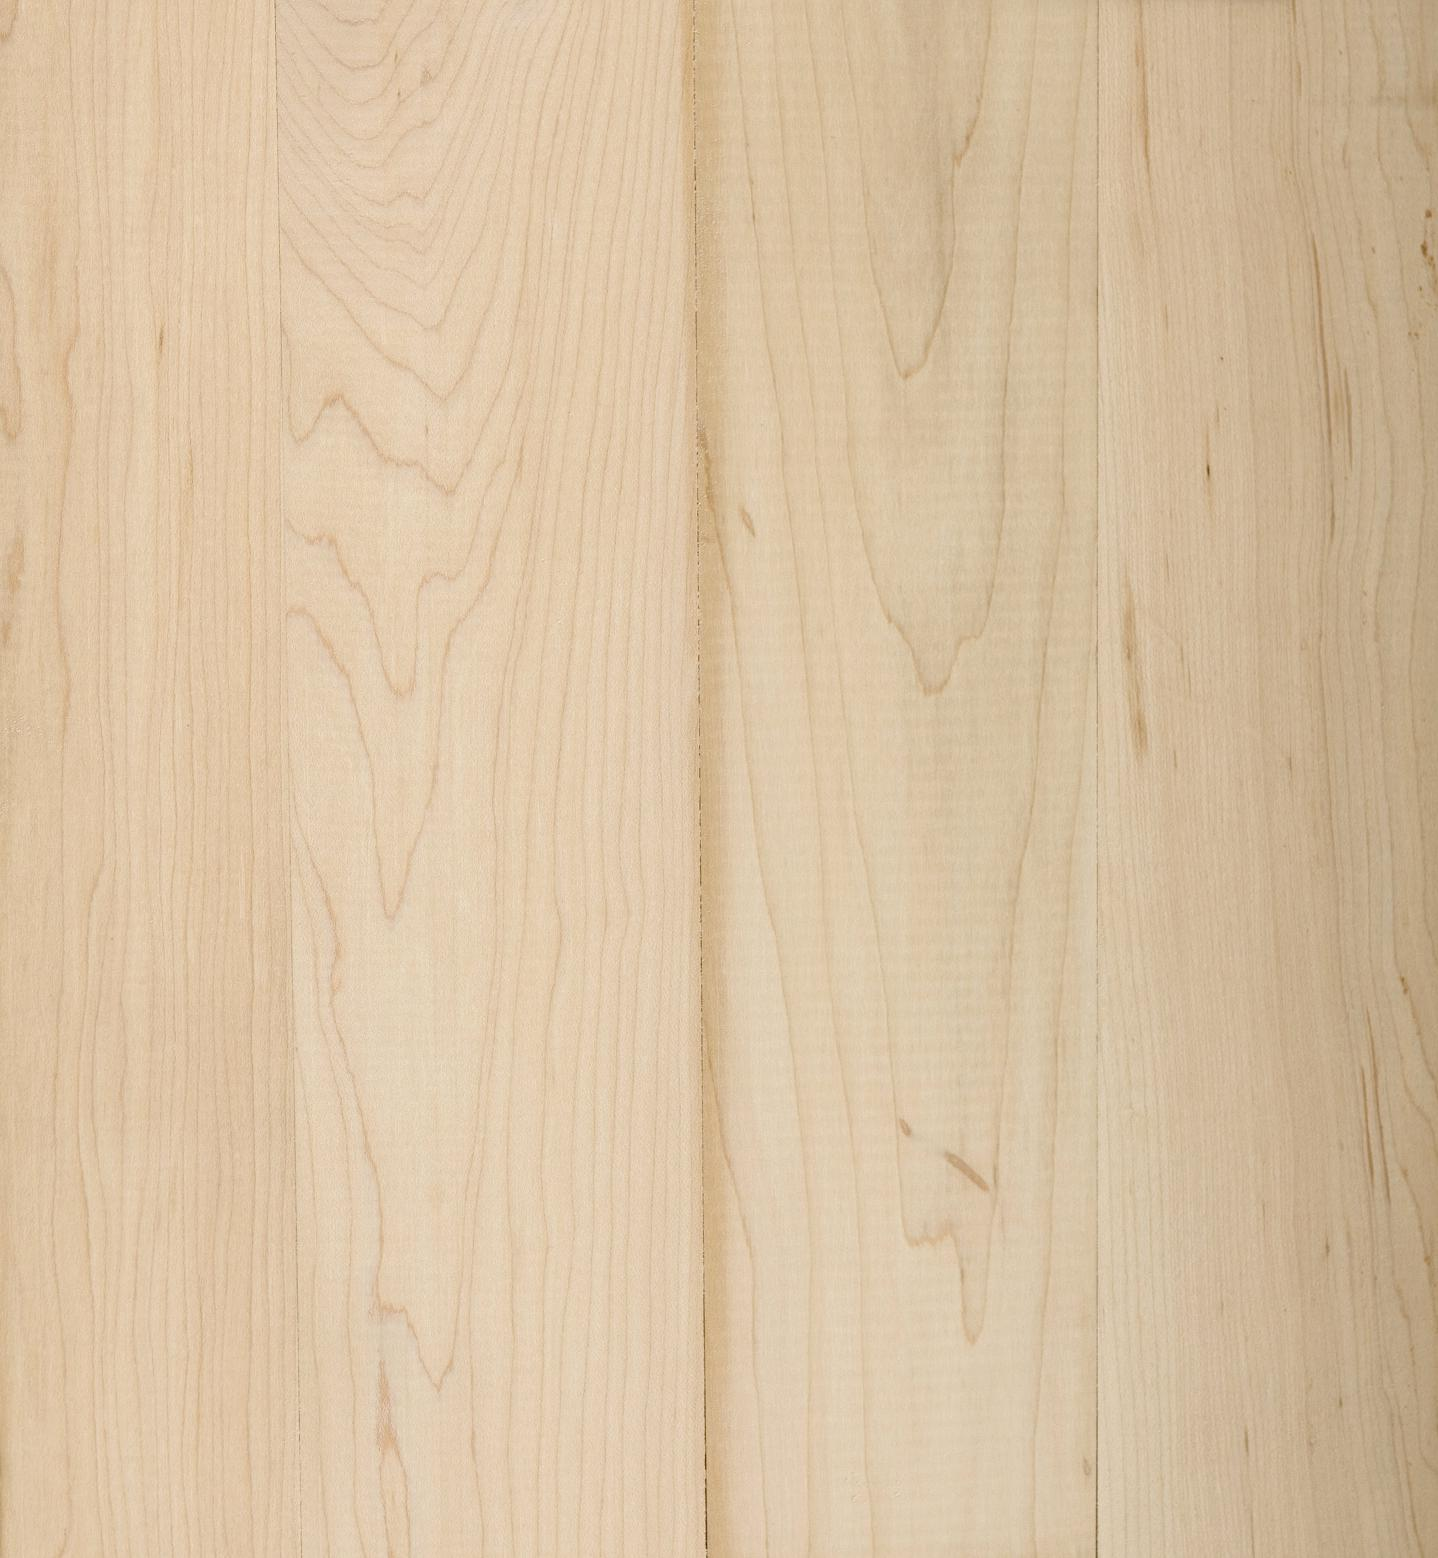 The 2012 Knotty Awards Woodflooringtrends